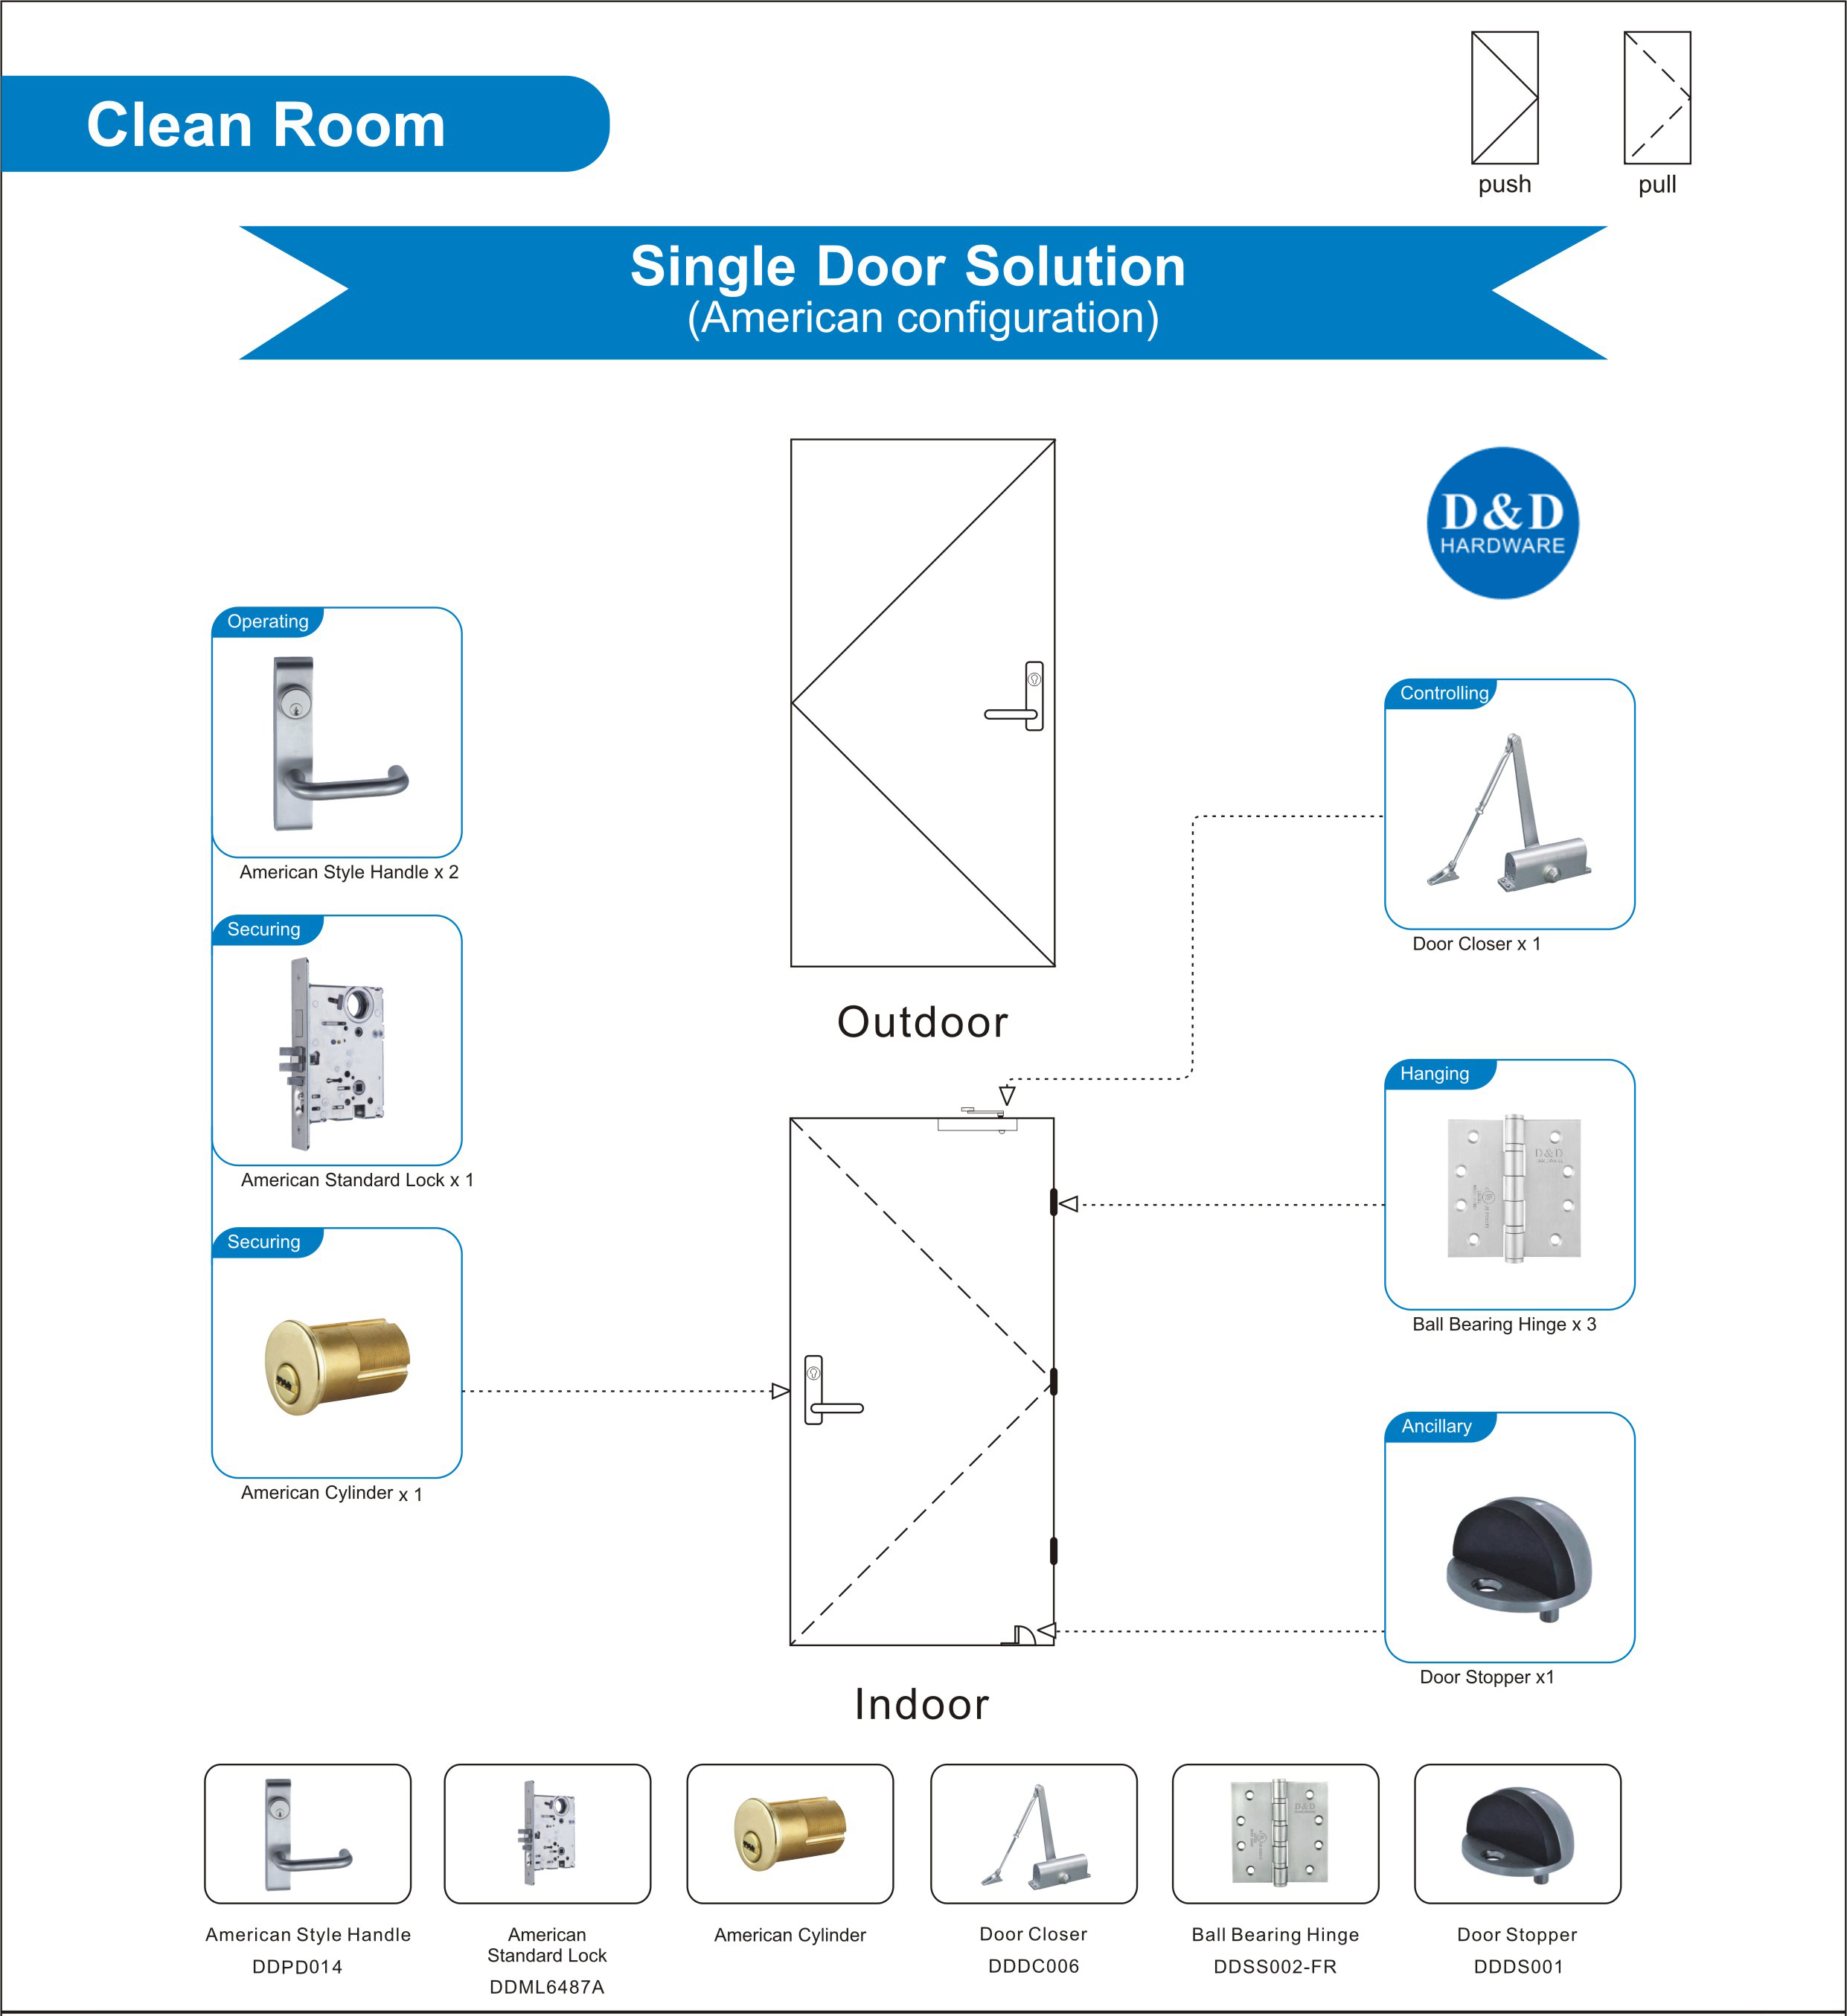 Building Hardware Solution for Clean Room Single Door